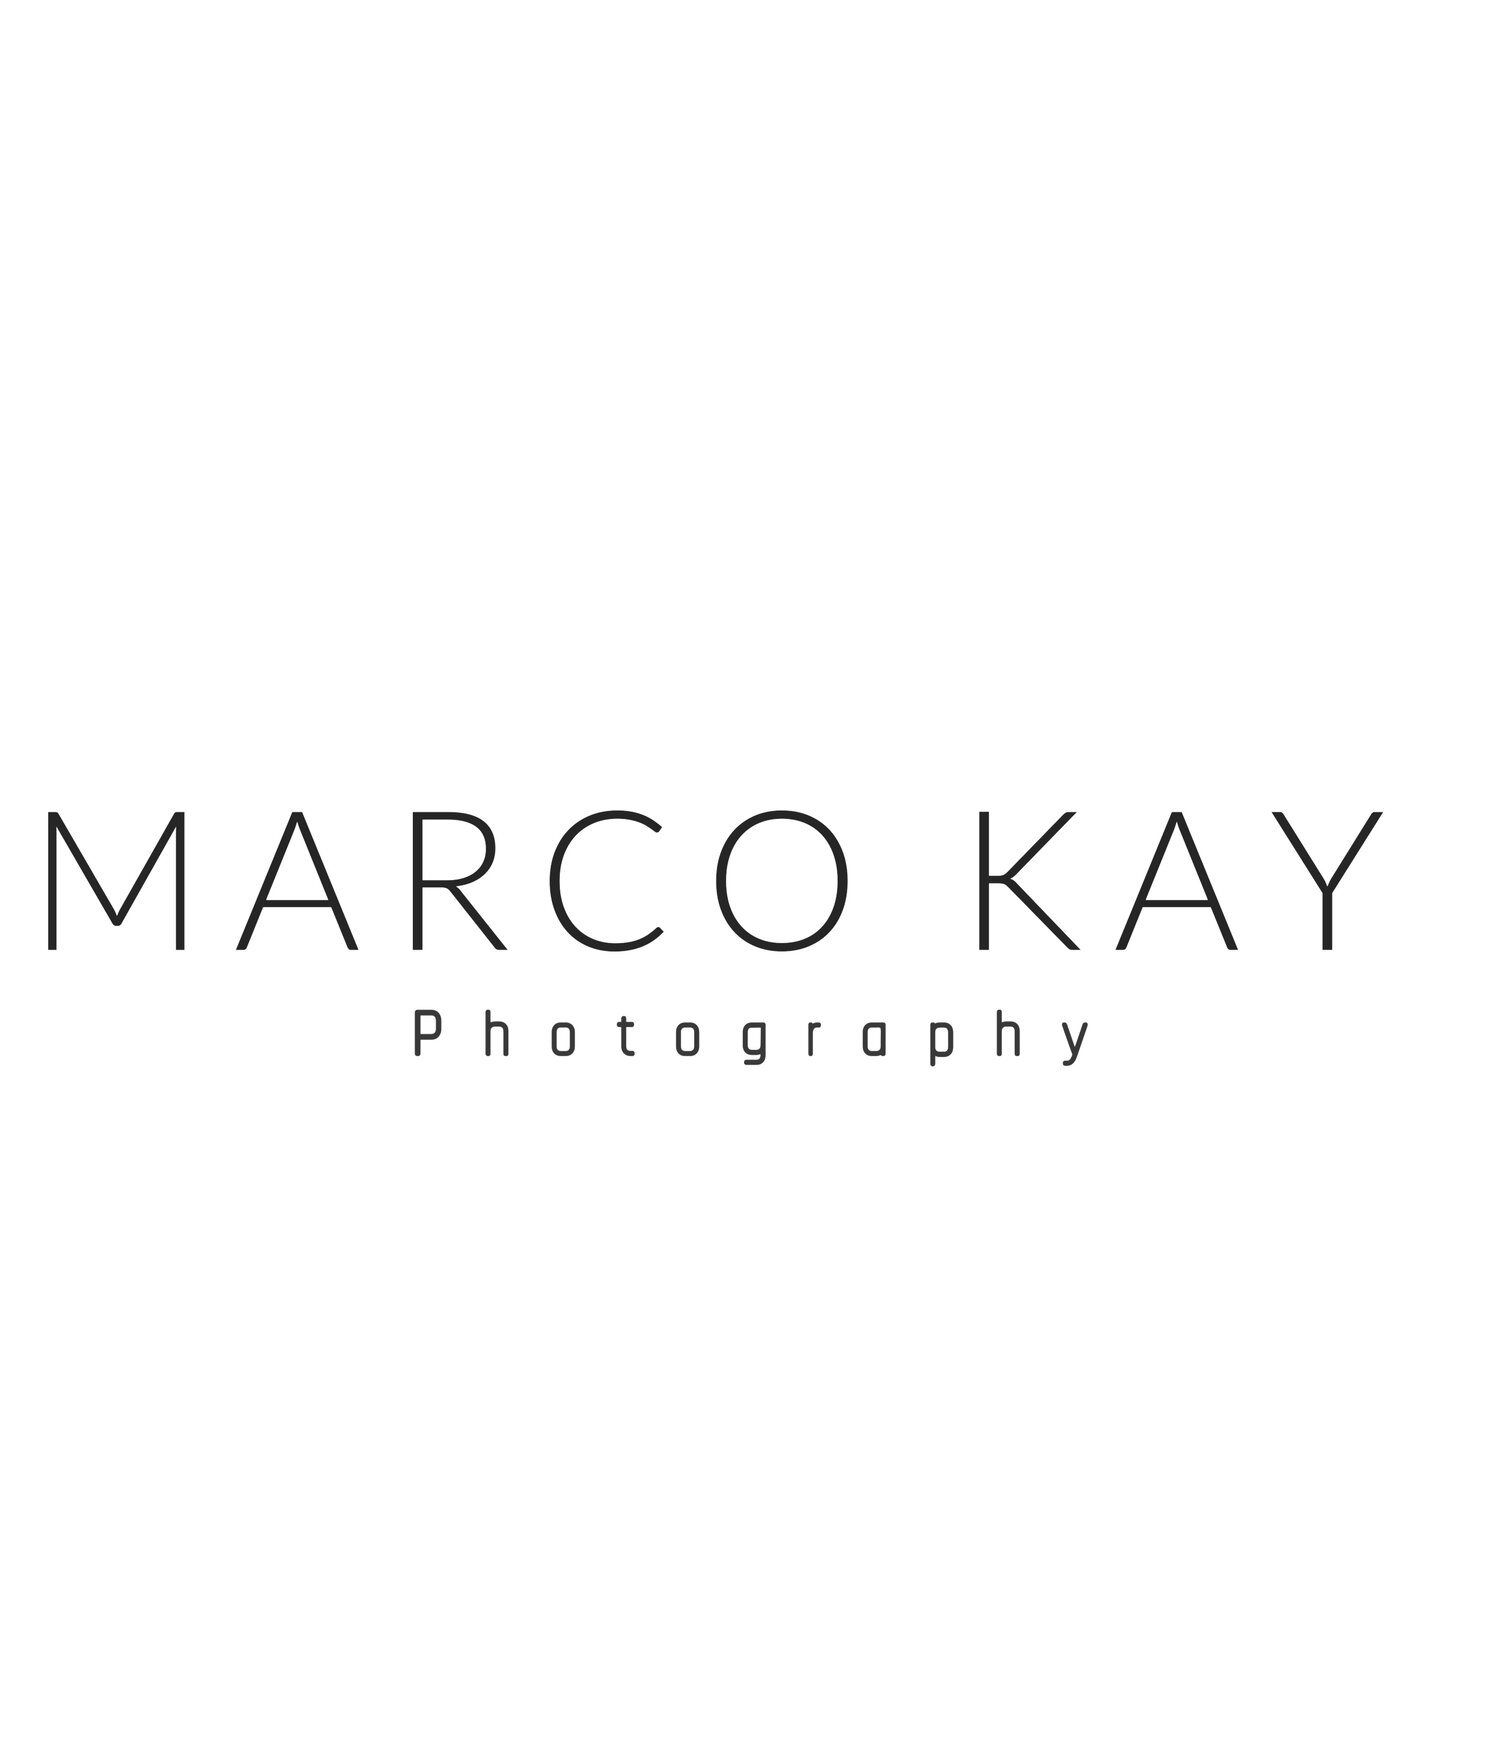 Marco Kay Photography